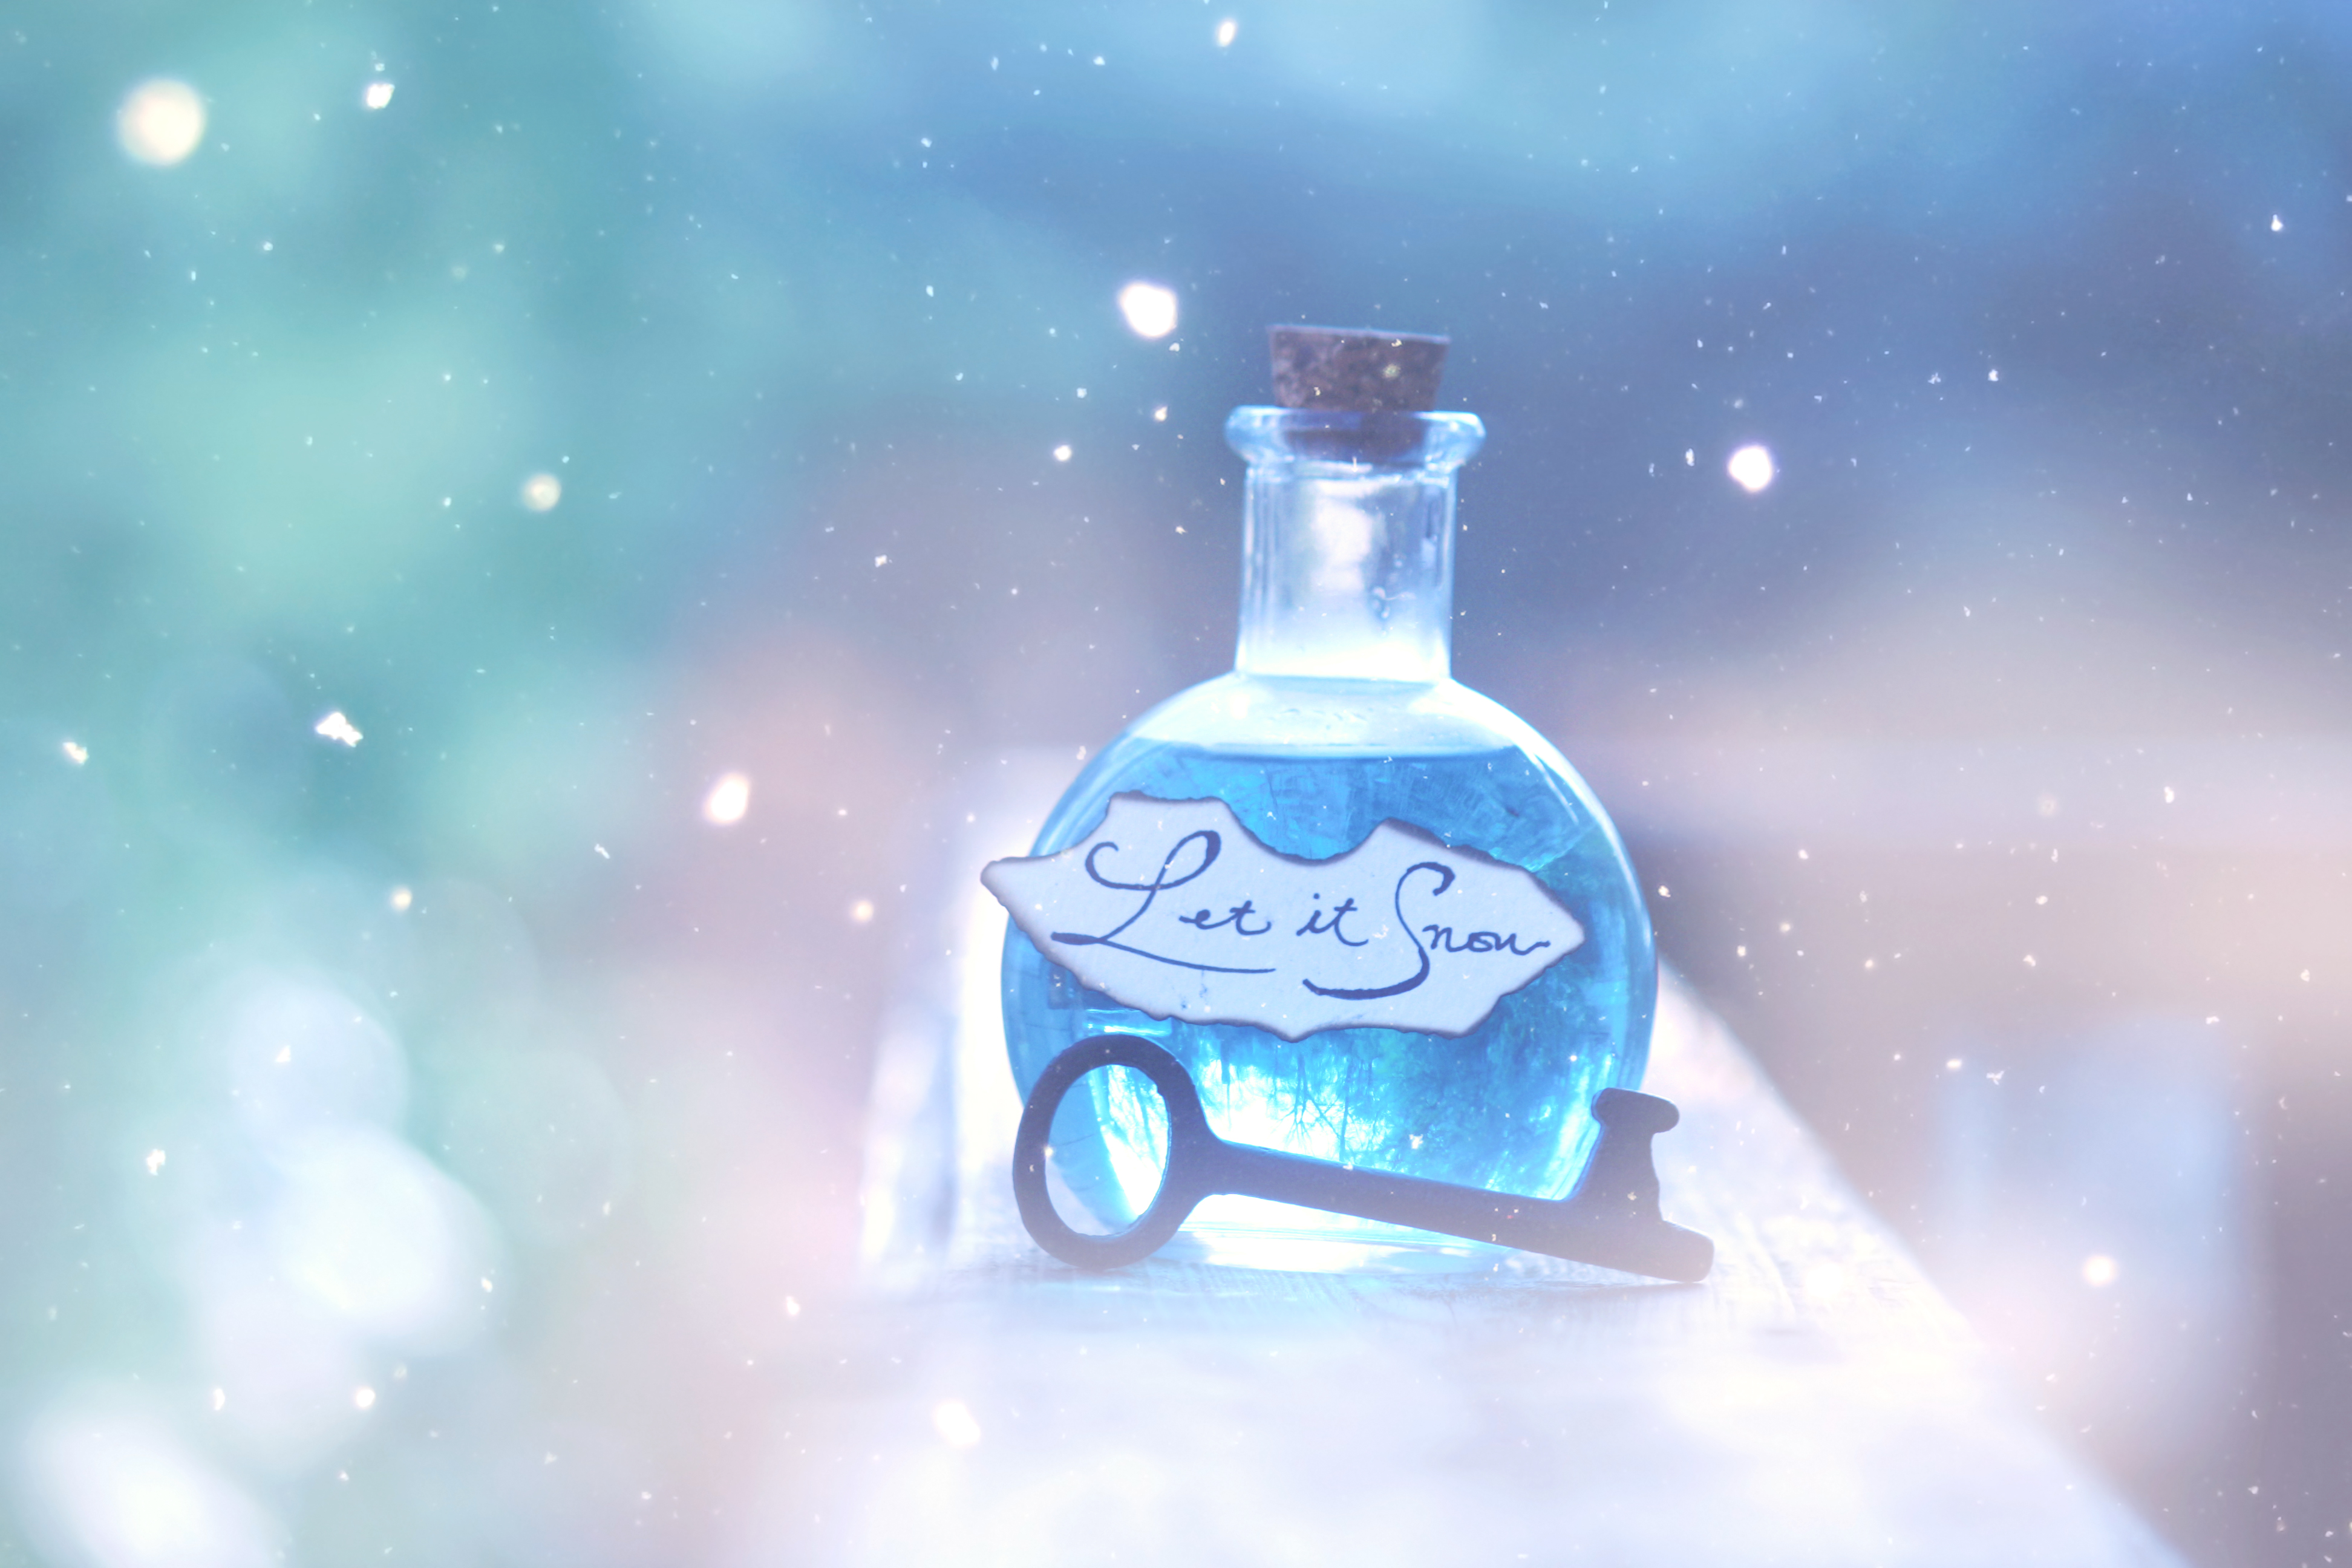 Let It Snow Wallpaper - HD Wallpapers - 9to5Wallpapers